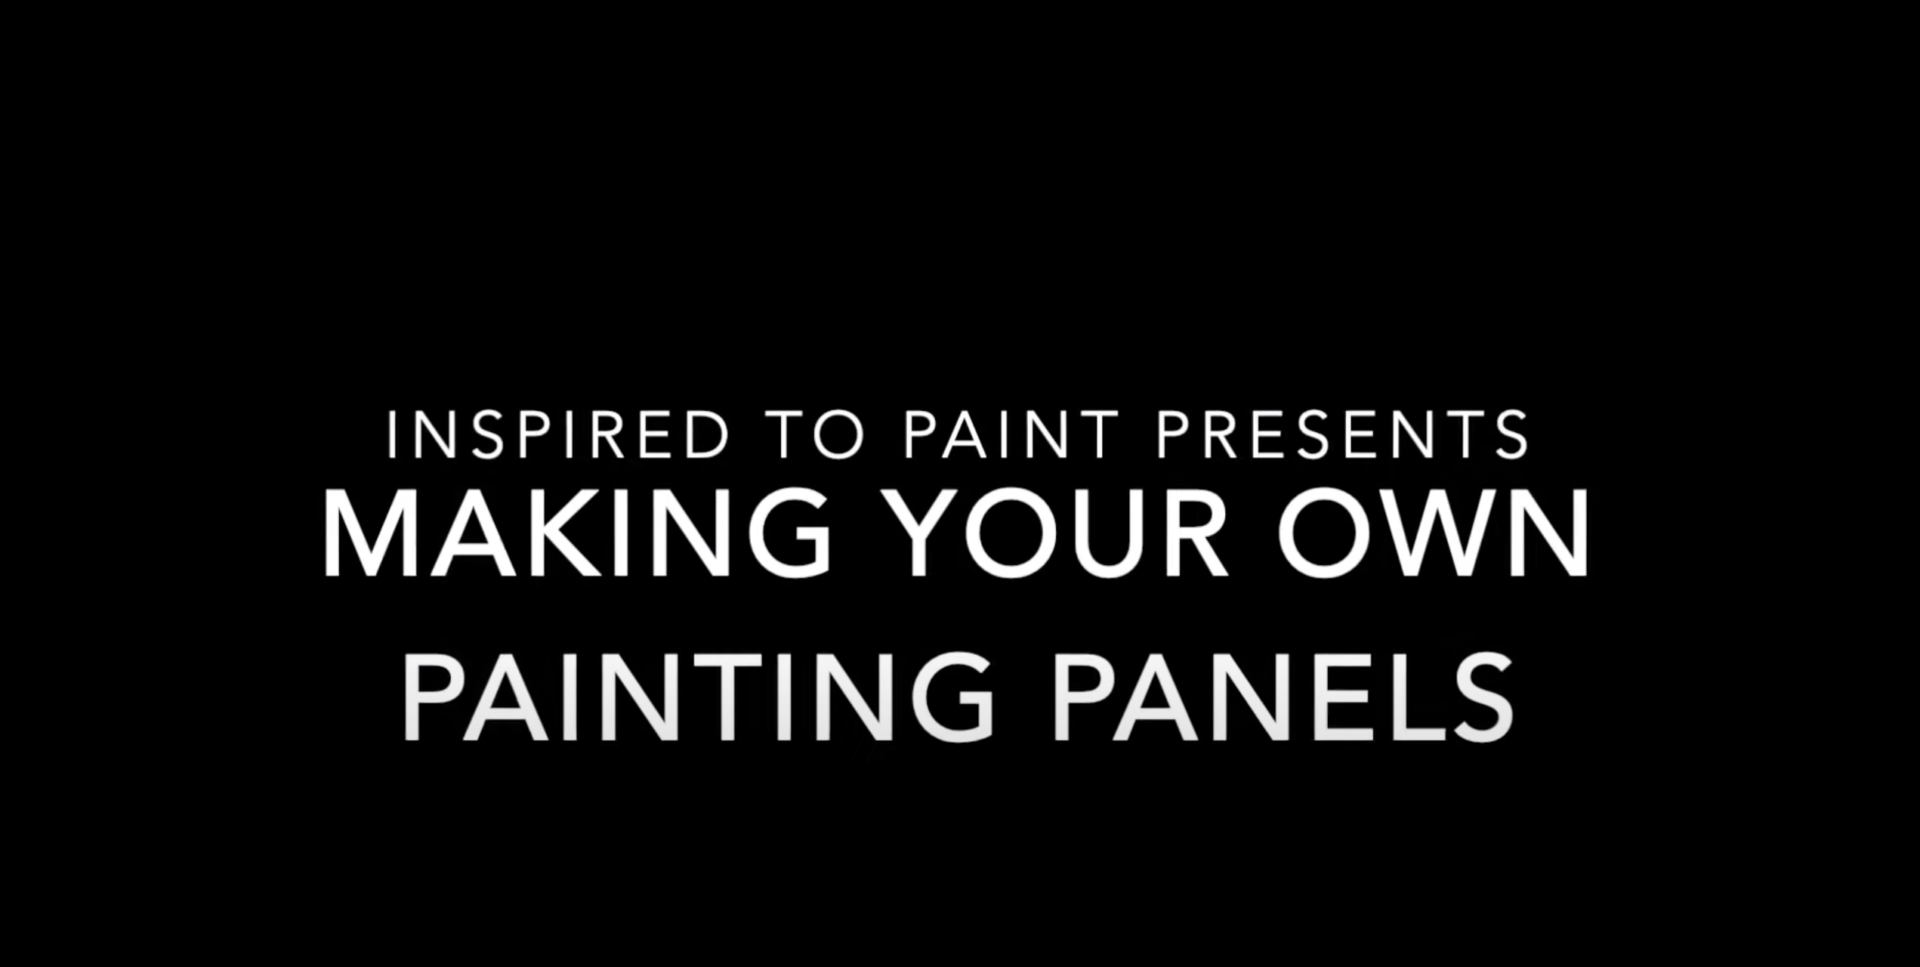 How to make painting panels